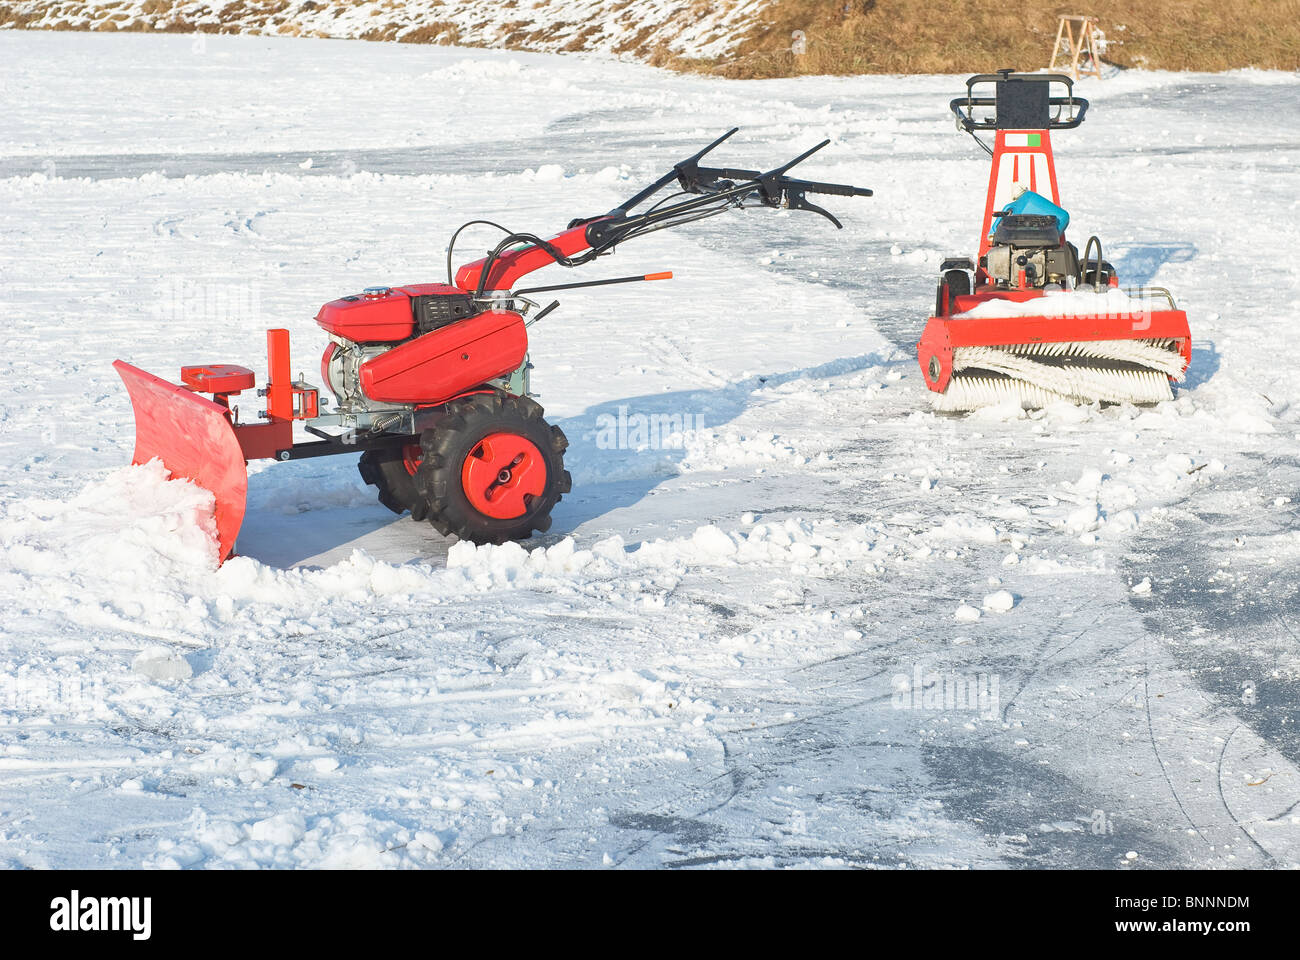 Snowplow for Removing Snow after Winter Storm - Stock Image